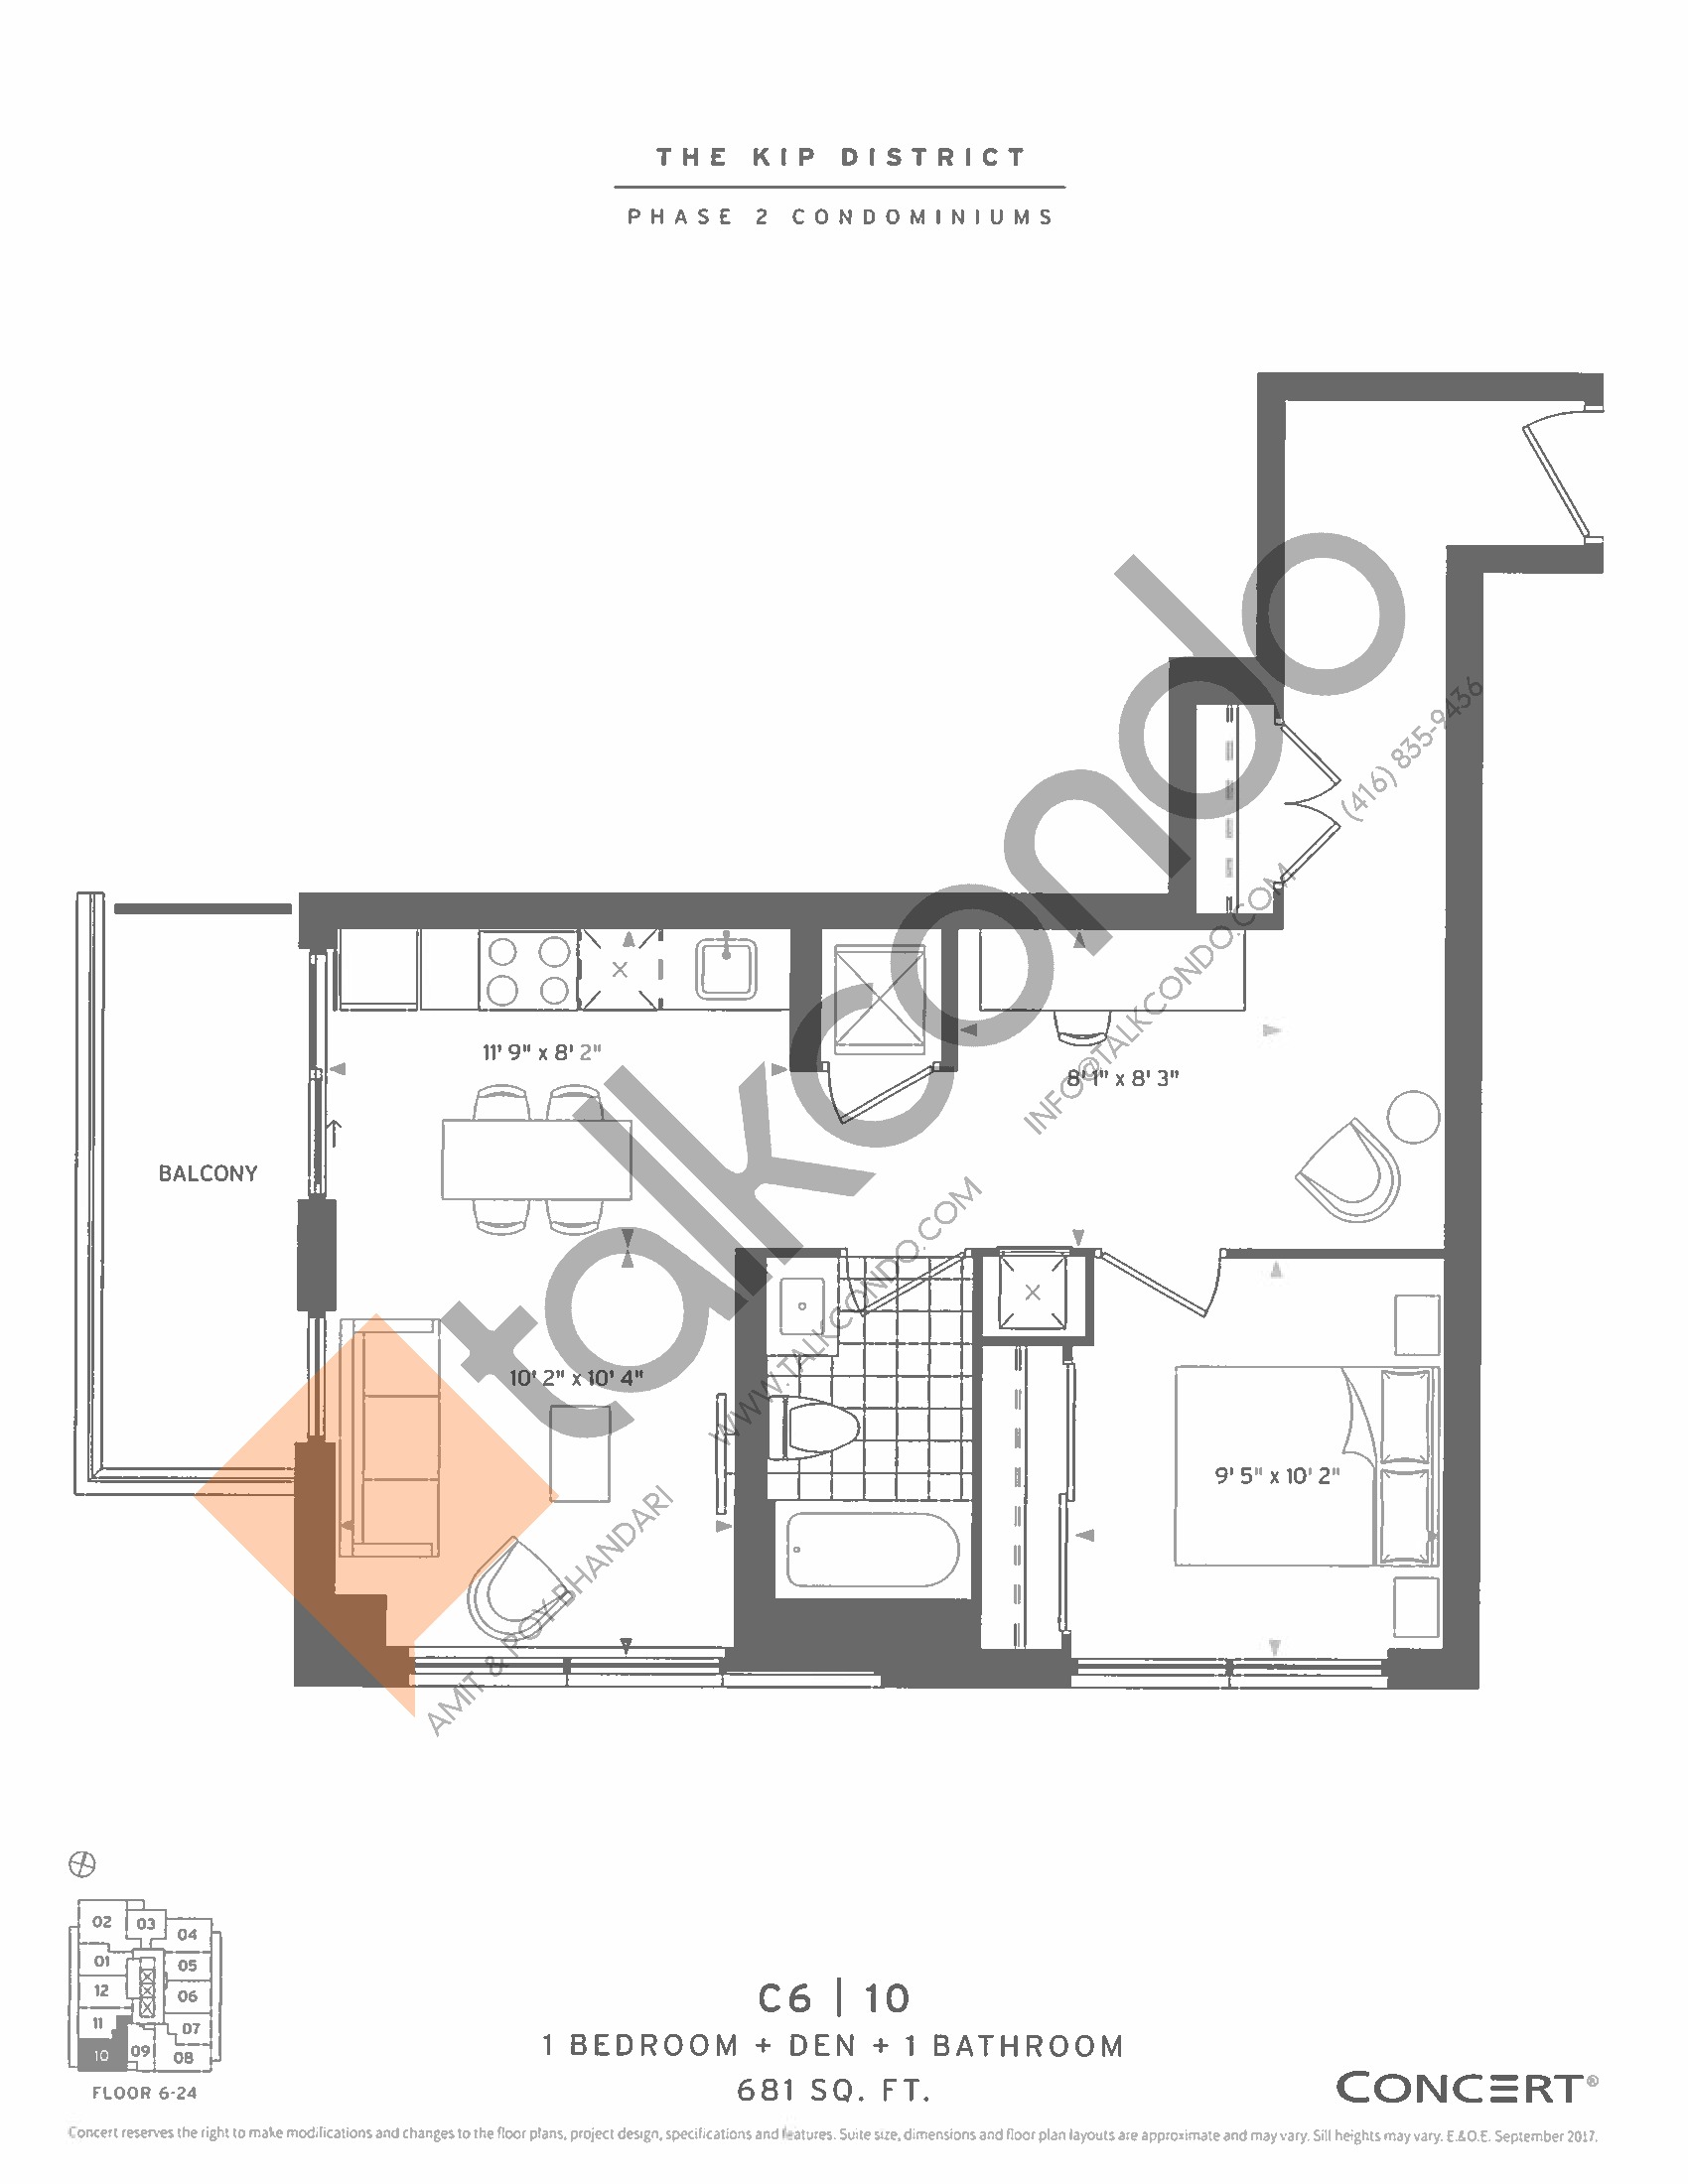 C6 | 10 Floor Plan at The Kip District Phase 2 Condos - 681 sq.ft